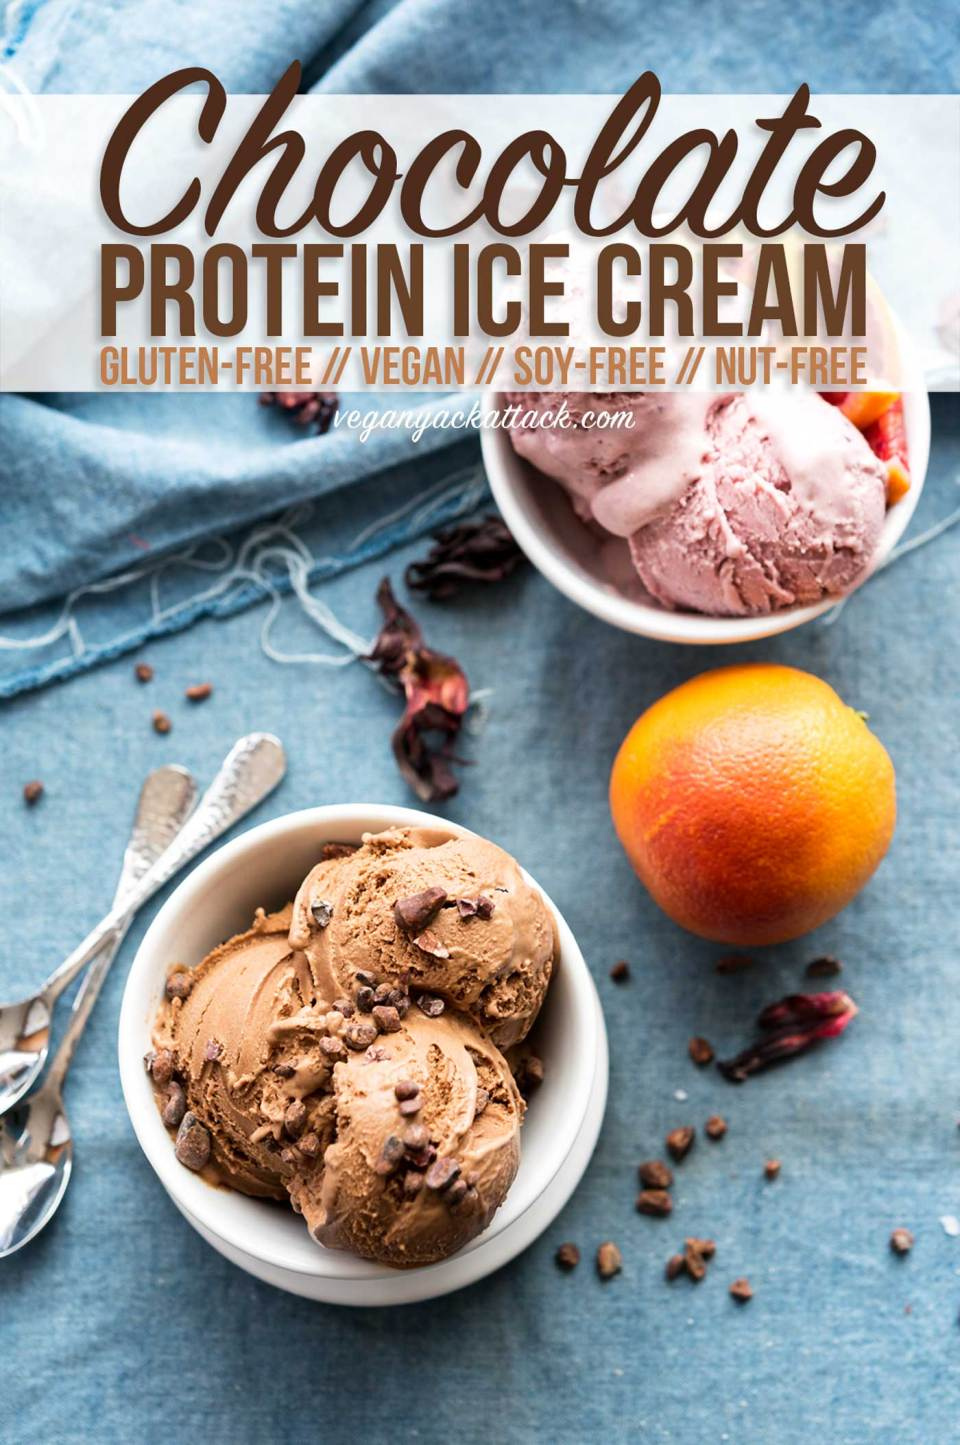 This ultra-creamy, Chocolate Protein Ice Cream is dairy-free, soy-free, nut-free and has a secret and totally unexpected ingredient - split peas! Plus, there's a no-churn option! #vegan #glutenfree #recipe